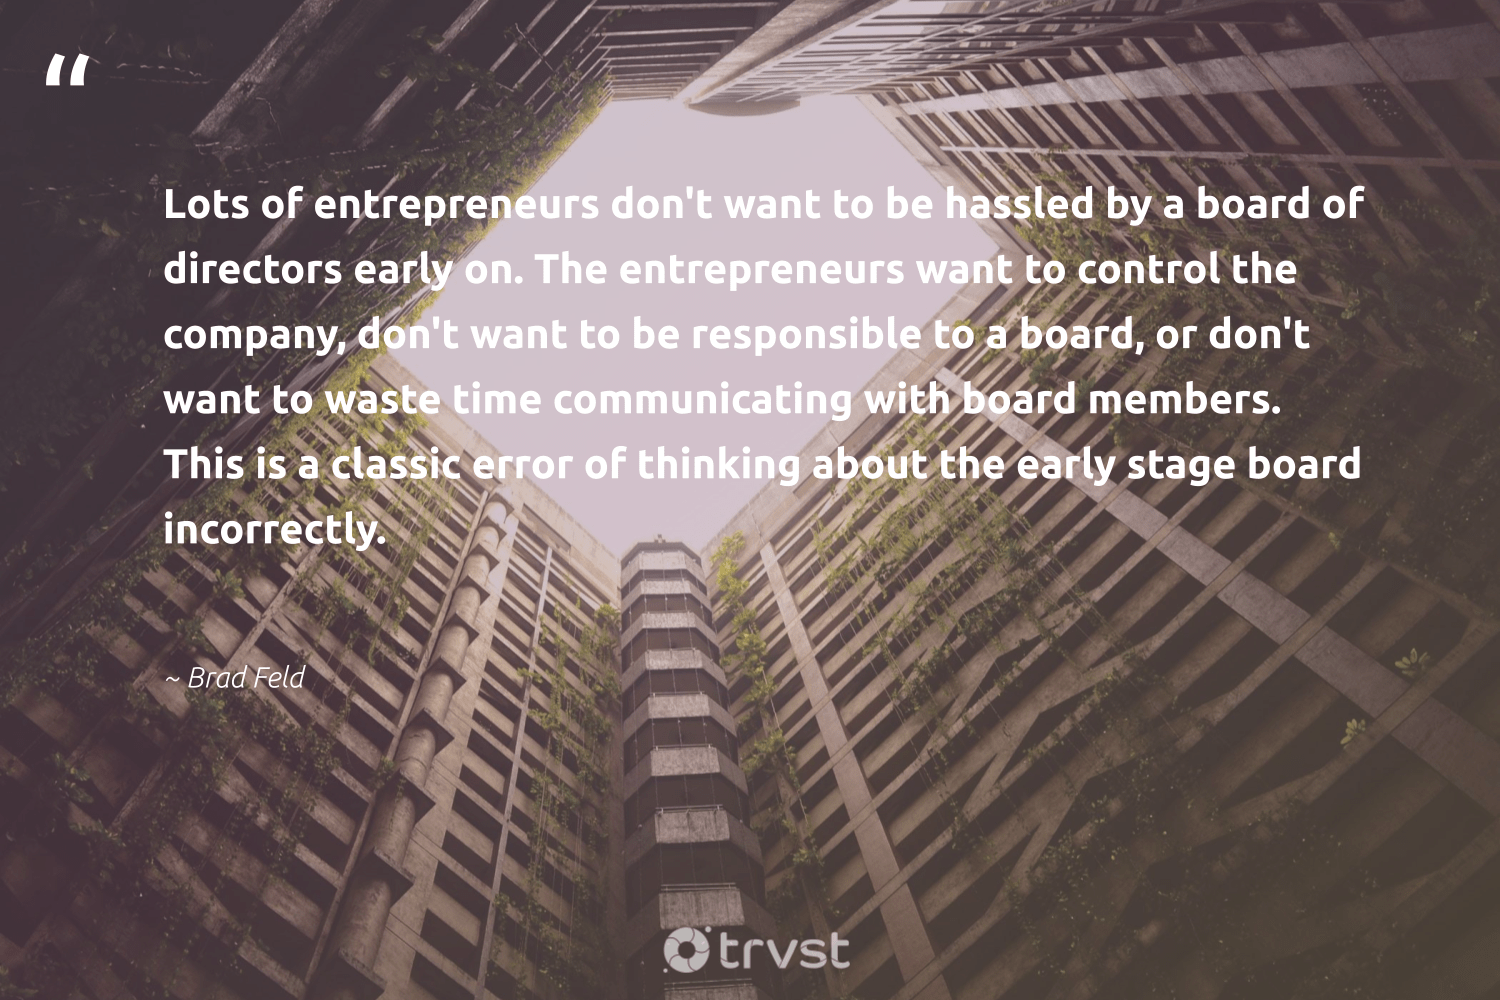 """Lots of entrepreneurs don't want to be hassled by a board of directors early on. The entrepreneurs want to control the company, don't want to be responsible to a board, or don't want to waste time communicating with board members. This is a classic error of thinking about the early stage board incorrectly.""  - Brad Feld #trvst #quotes #waste #dogood #changetheworld #makeadifference #gogreen #ethicalbusiness #beinspired #socialchange #bethechange #giveback"